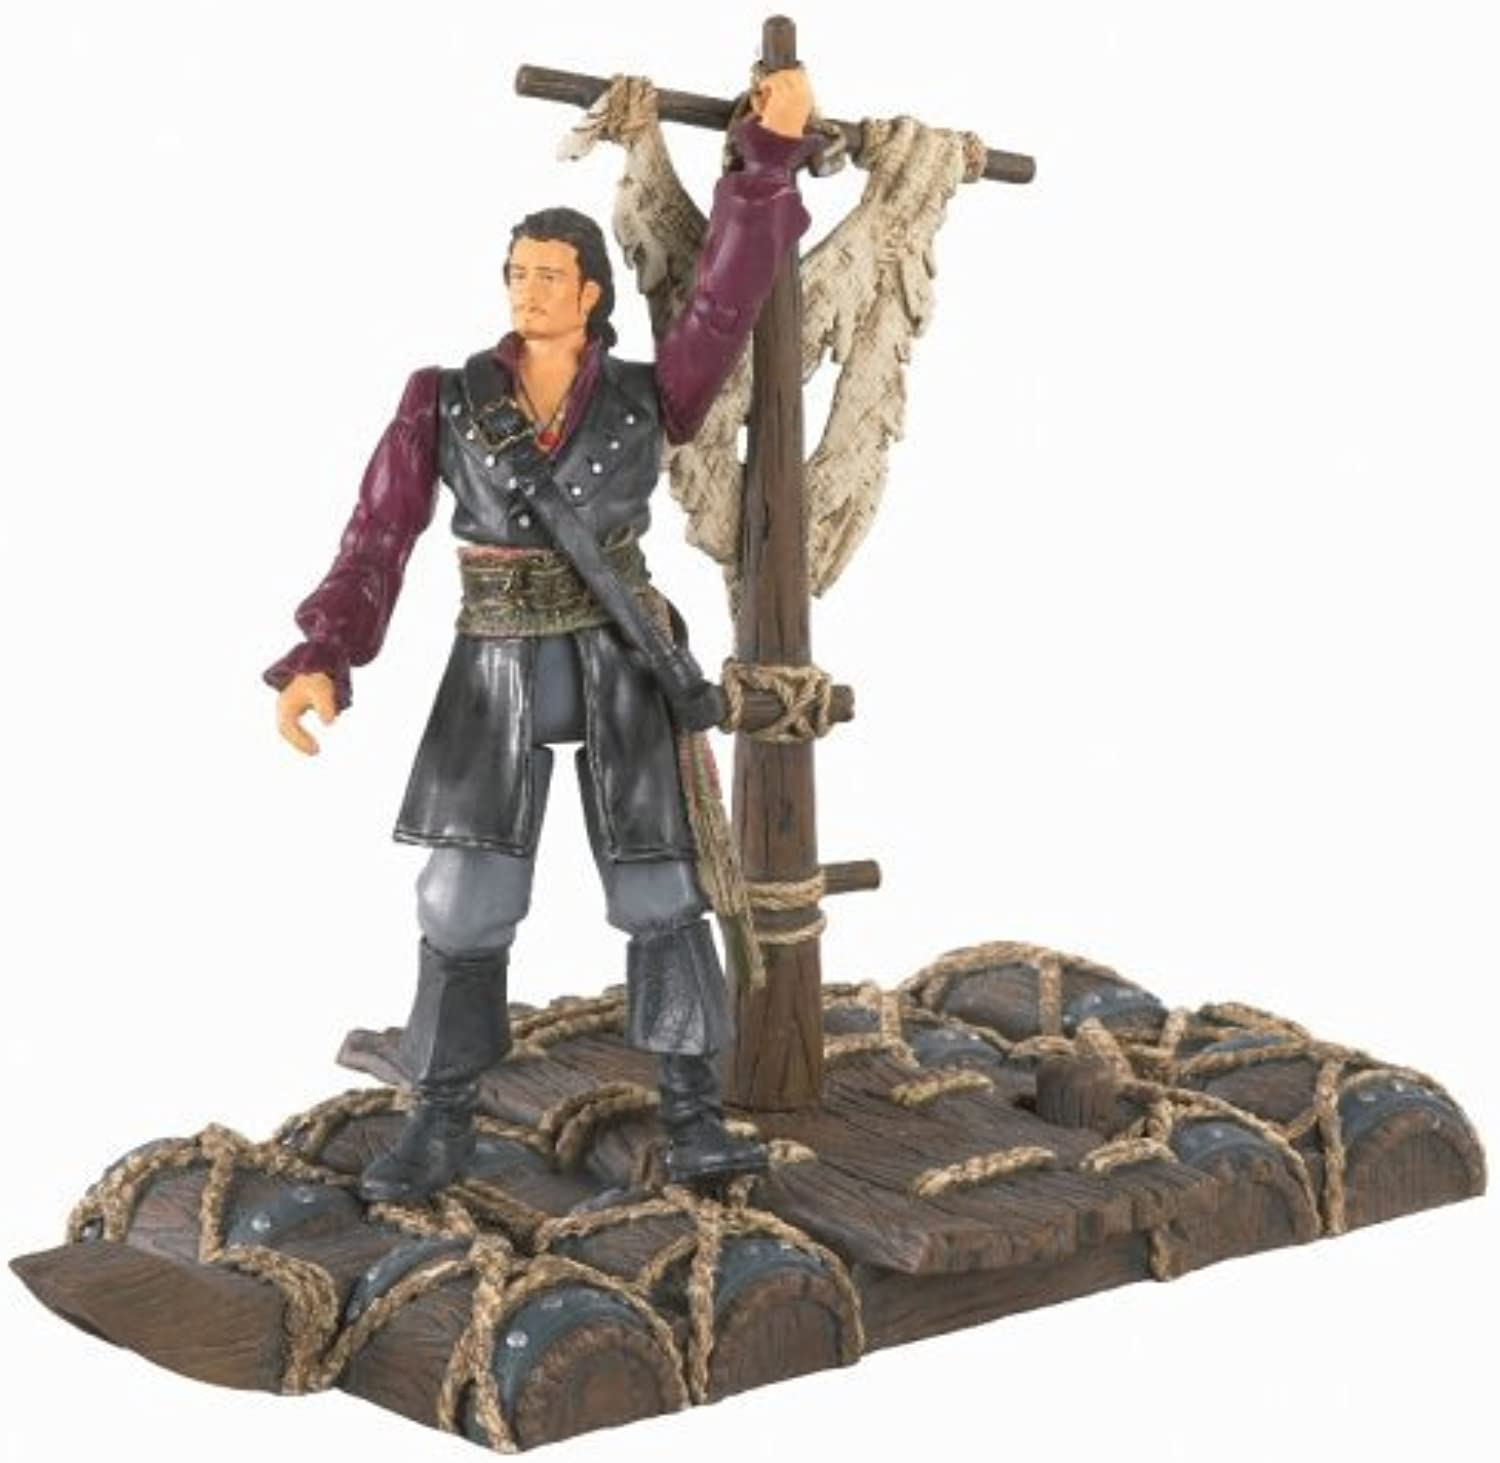 Pirates Of The Carribean 3  at World's End - Will Turner with Spinning Powder Keg Raft by Zizzle